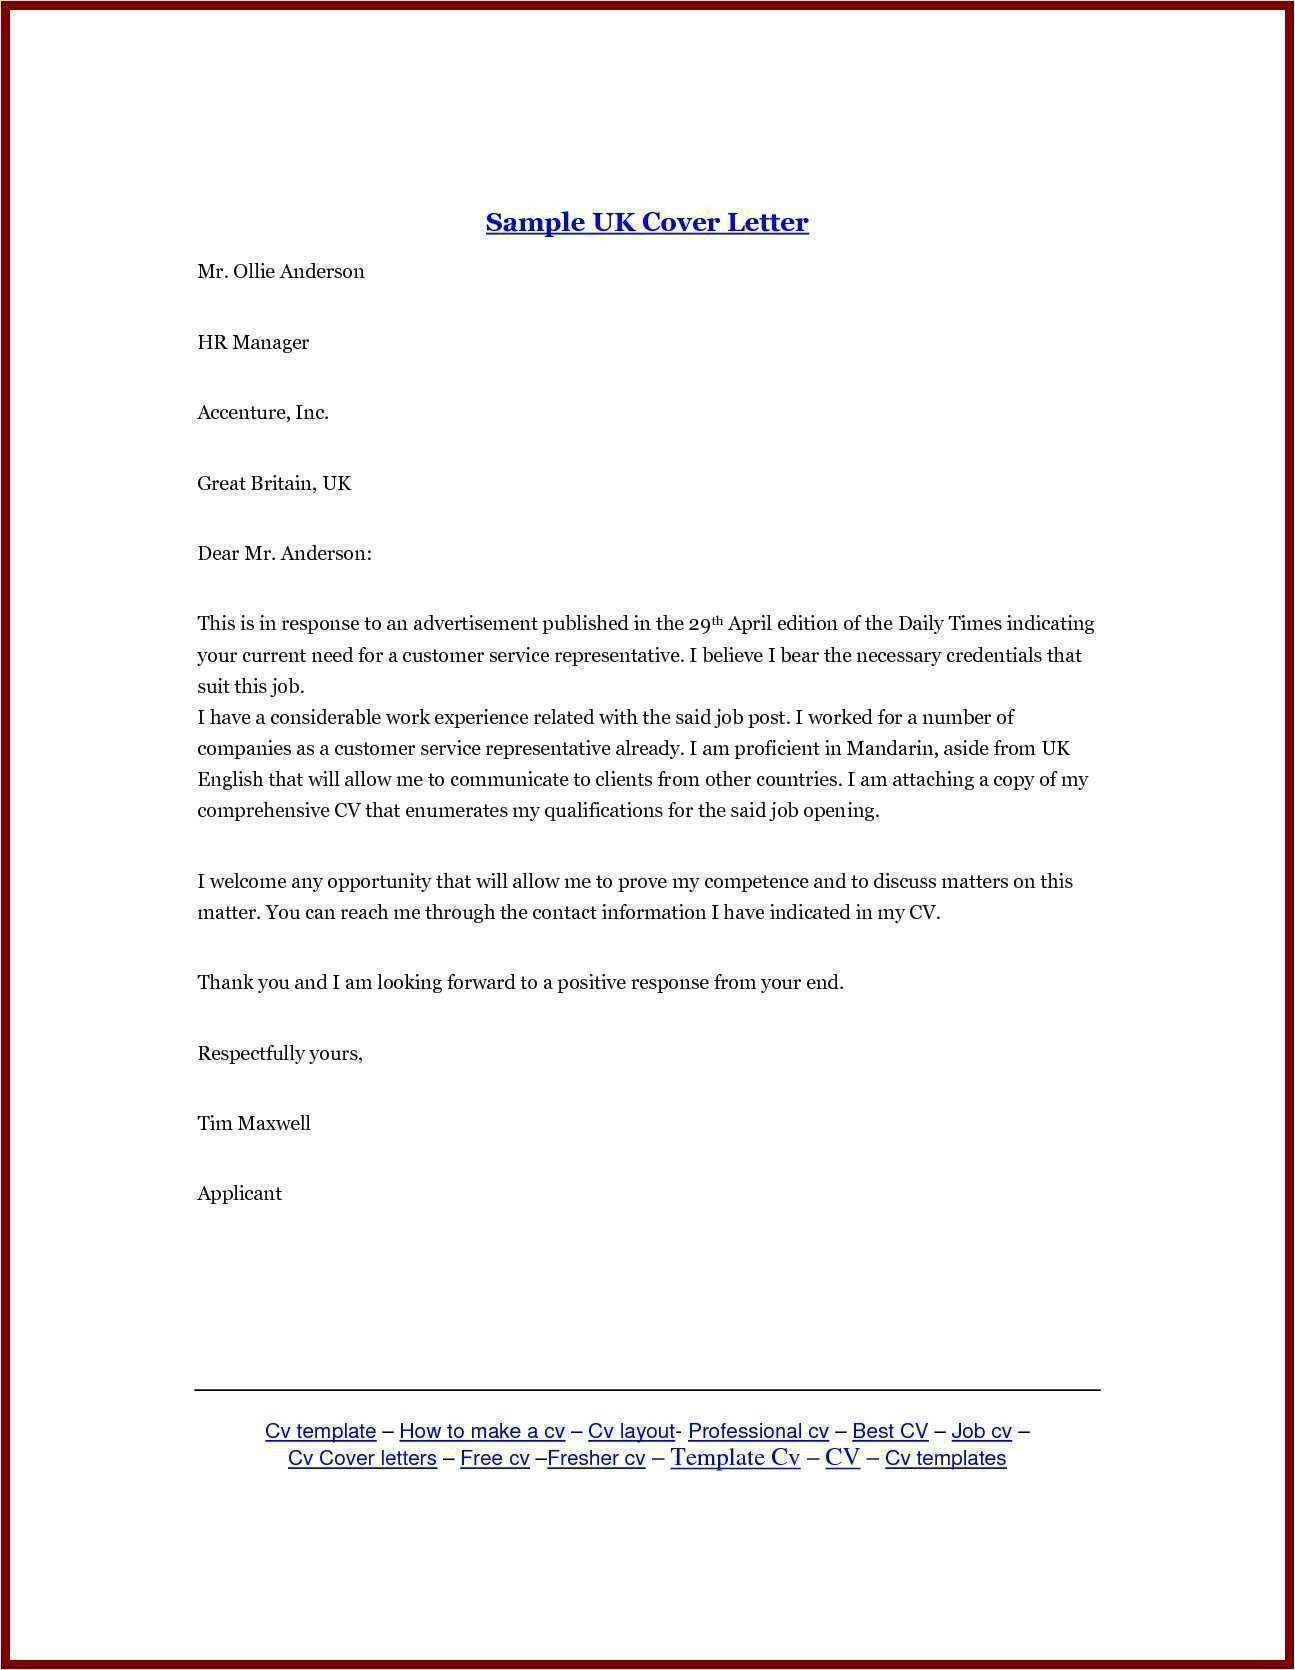 resume cover letter example template Collection-Cover Letter Example for Job Opening New Bank Letter format formal Letter Template Unique bylaws Template 4-e